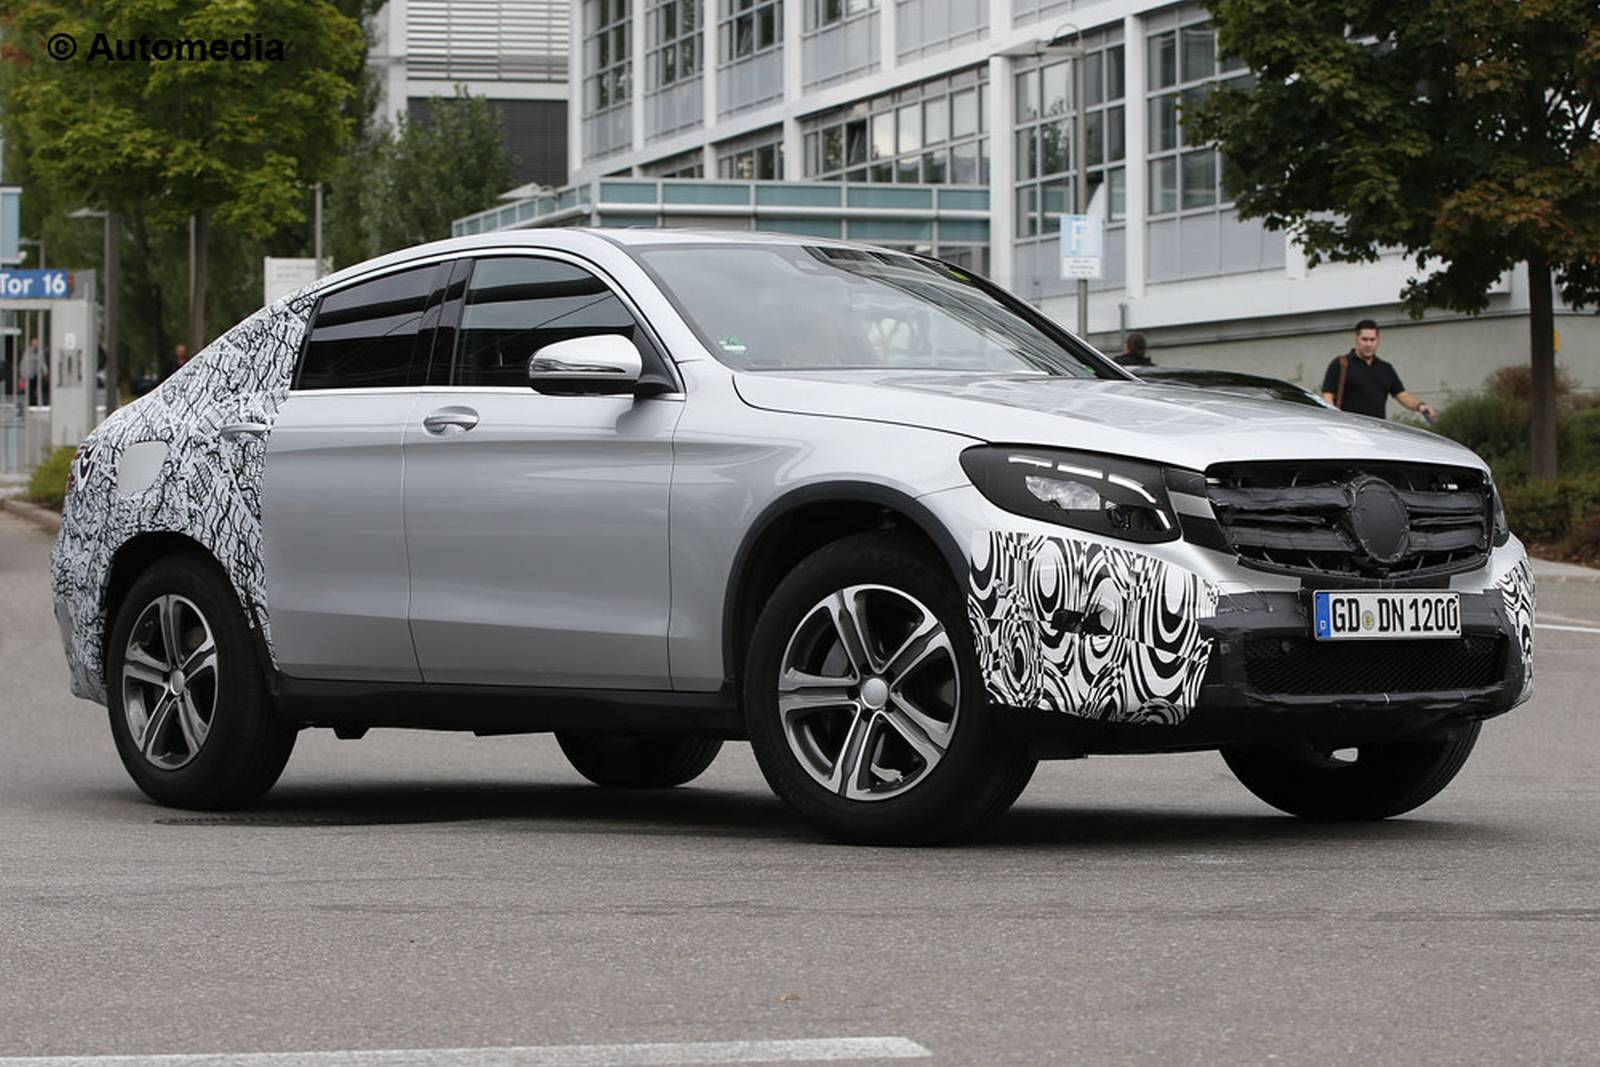 2017 mercedes benz glc coupe spy shots emerge gtspirit. Black Bedroom Furniture Sets. Home Design Ideas